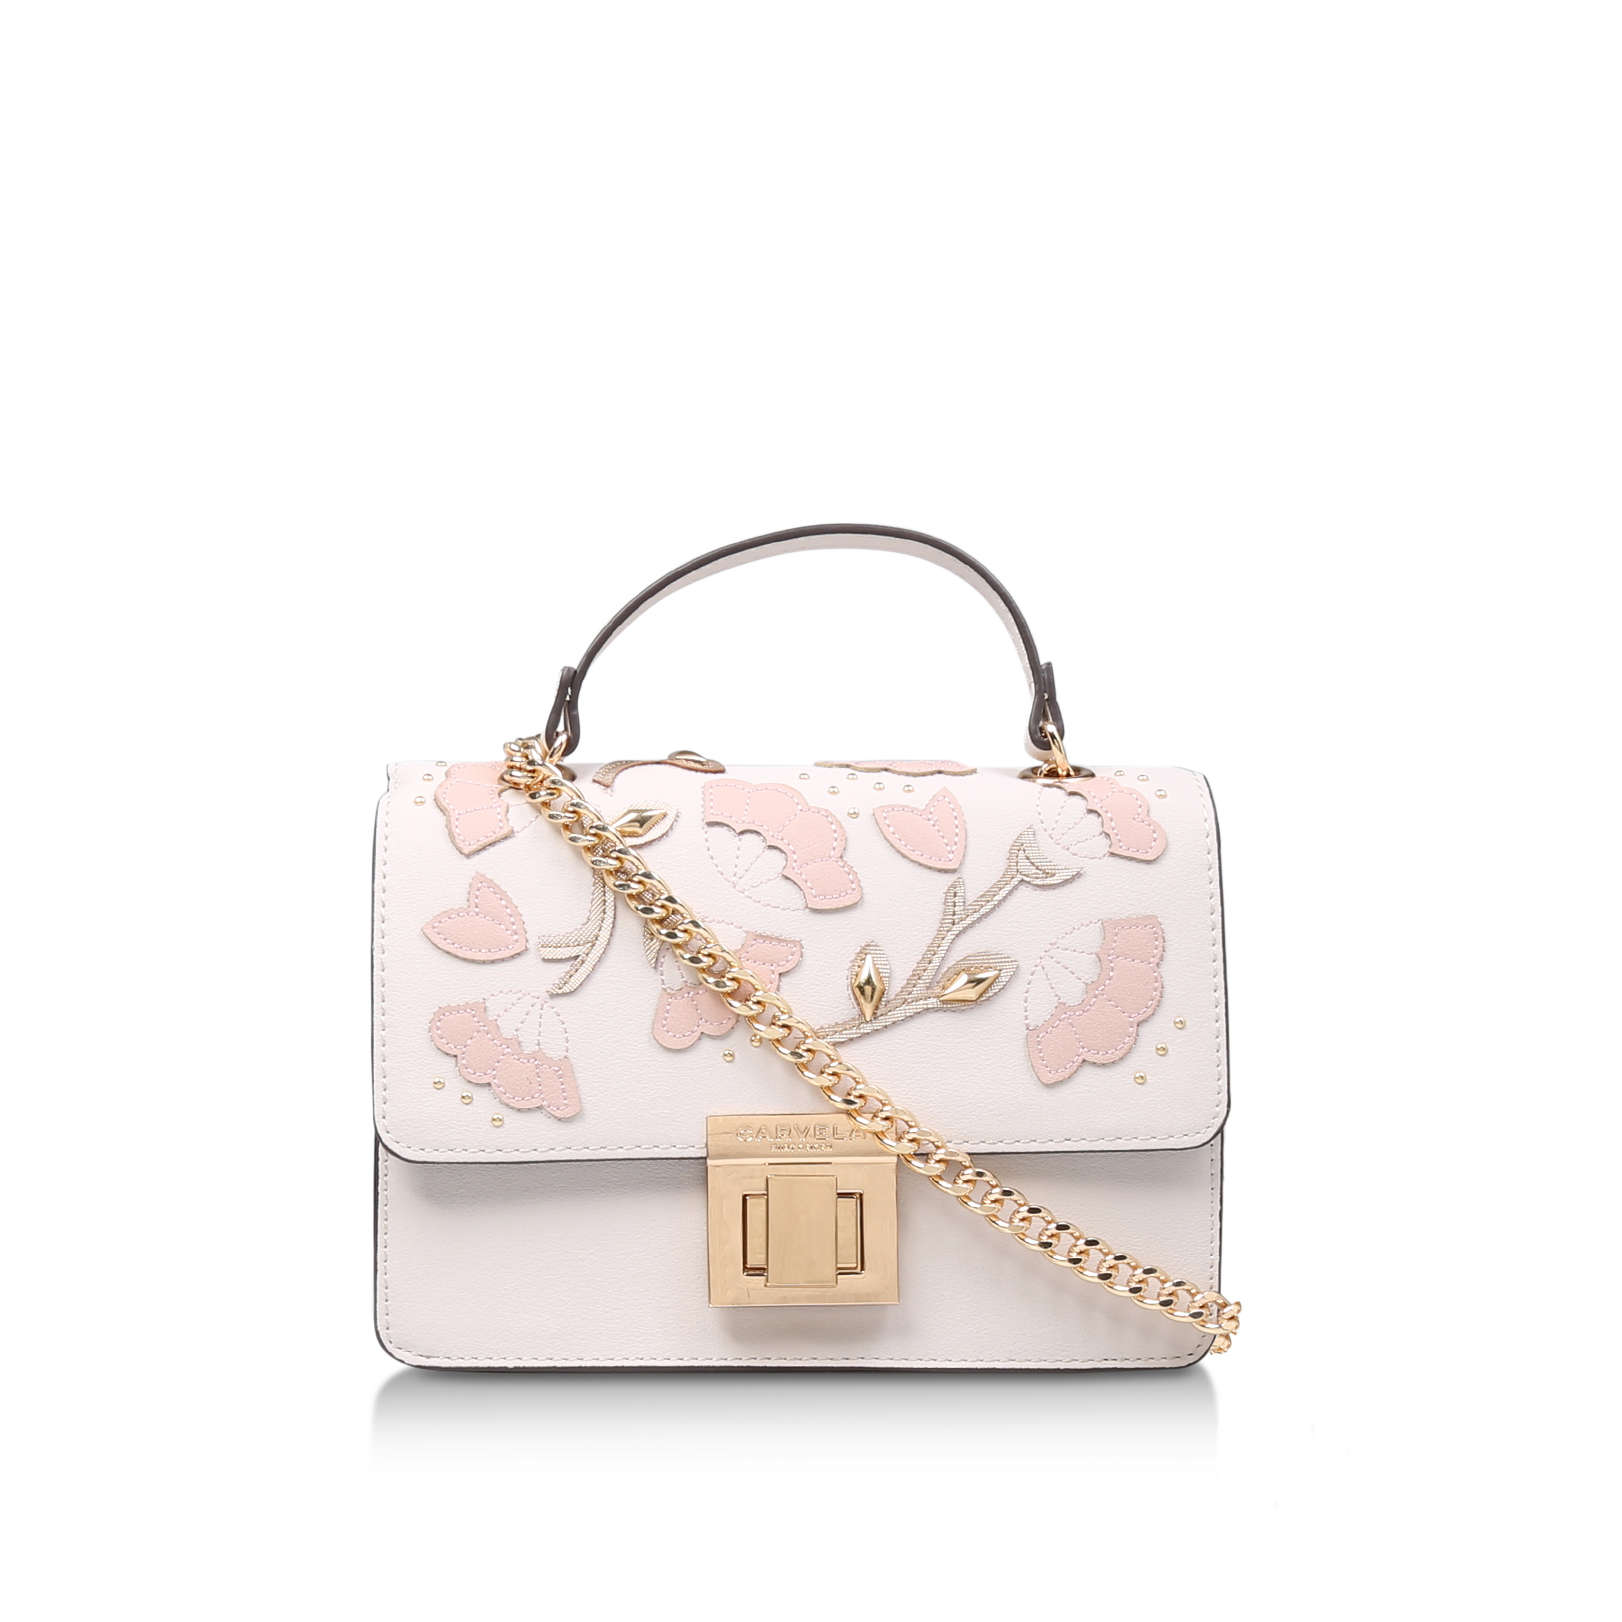 ORLA FLOWER CHAIN BAG